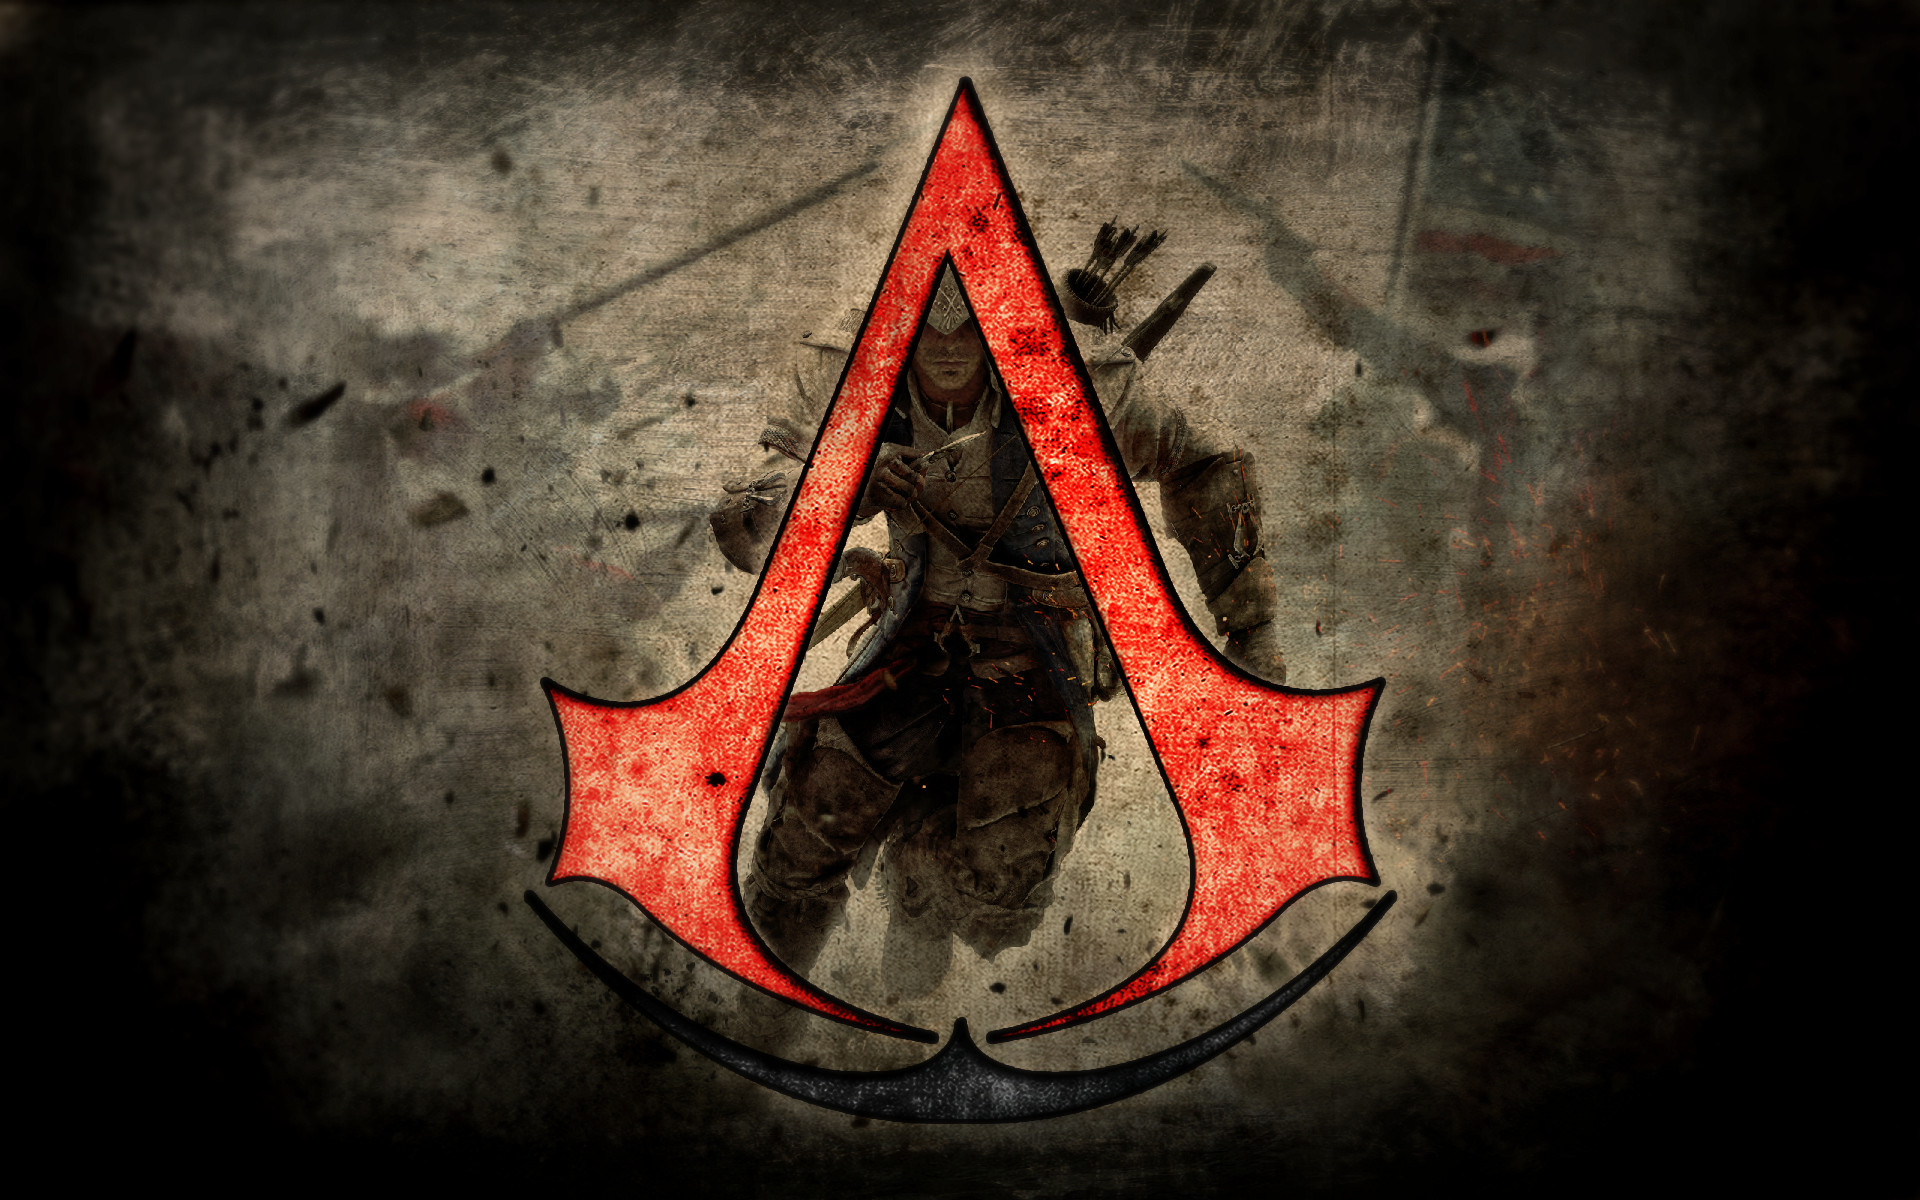 Free Download Assassins Creed Logo Wallpaper 1920x1200 For Your